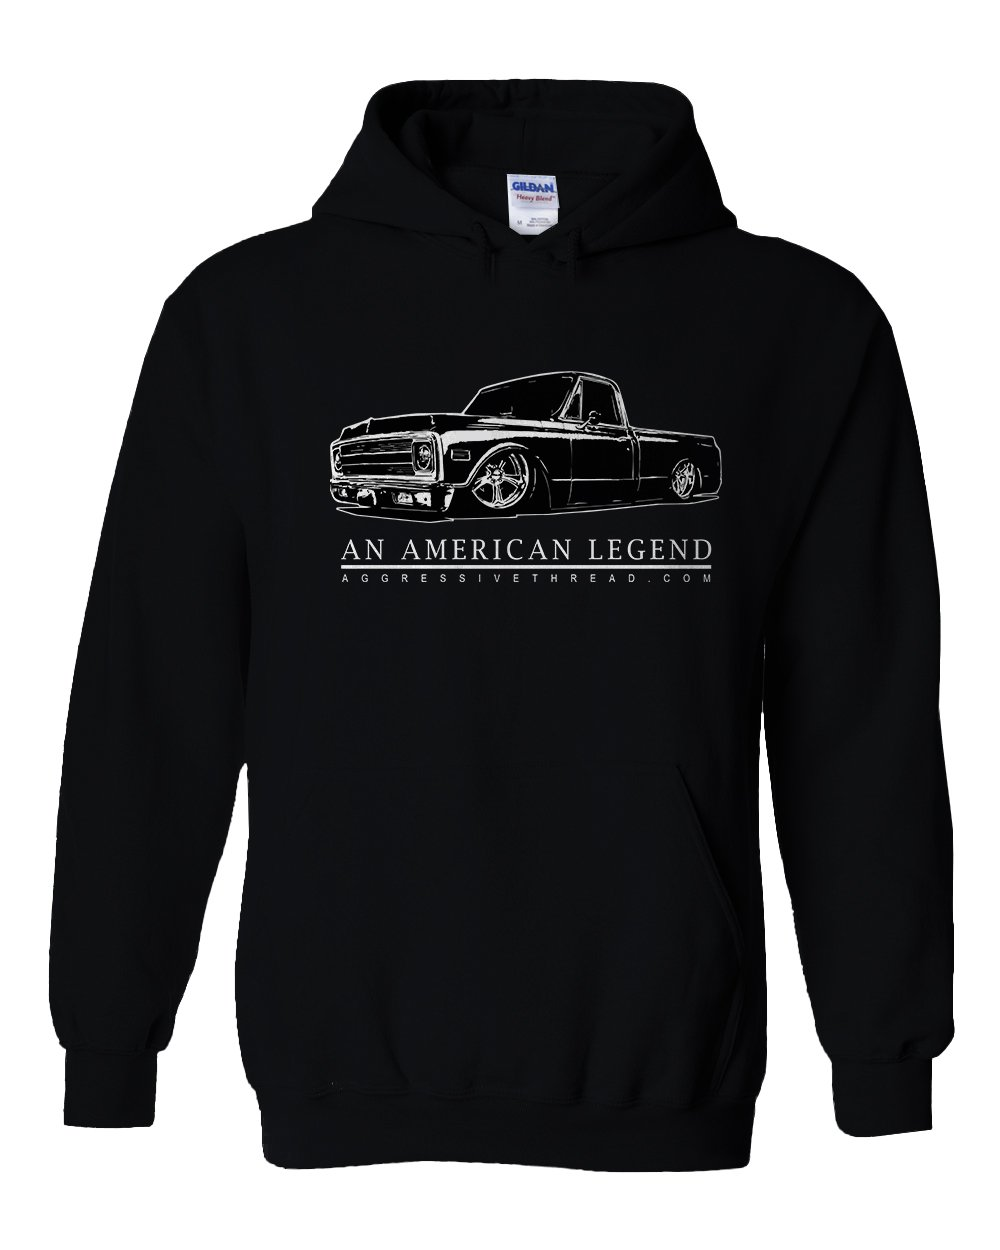 70-72 Chevy C10 Truck Hoodie Sweatshirt | Aggressive Thread Truck Apparel